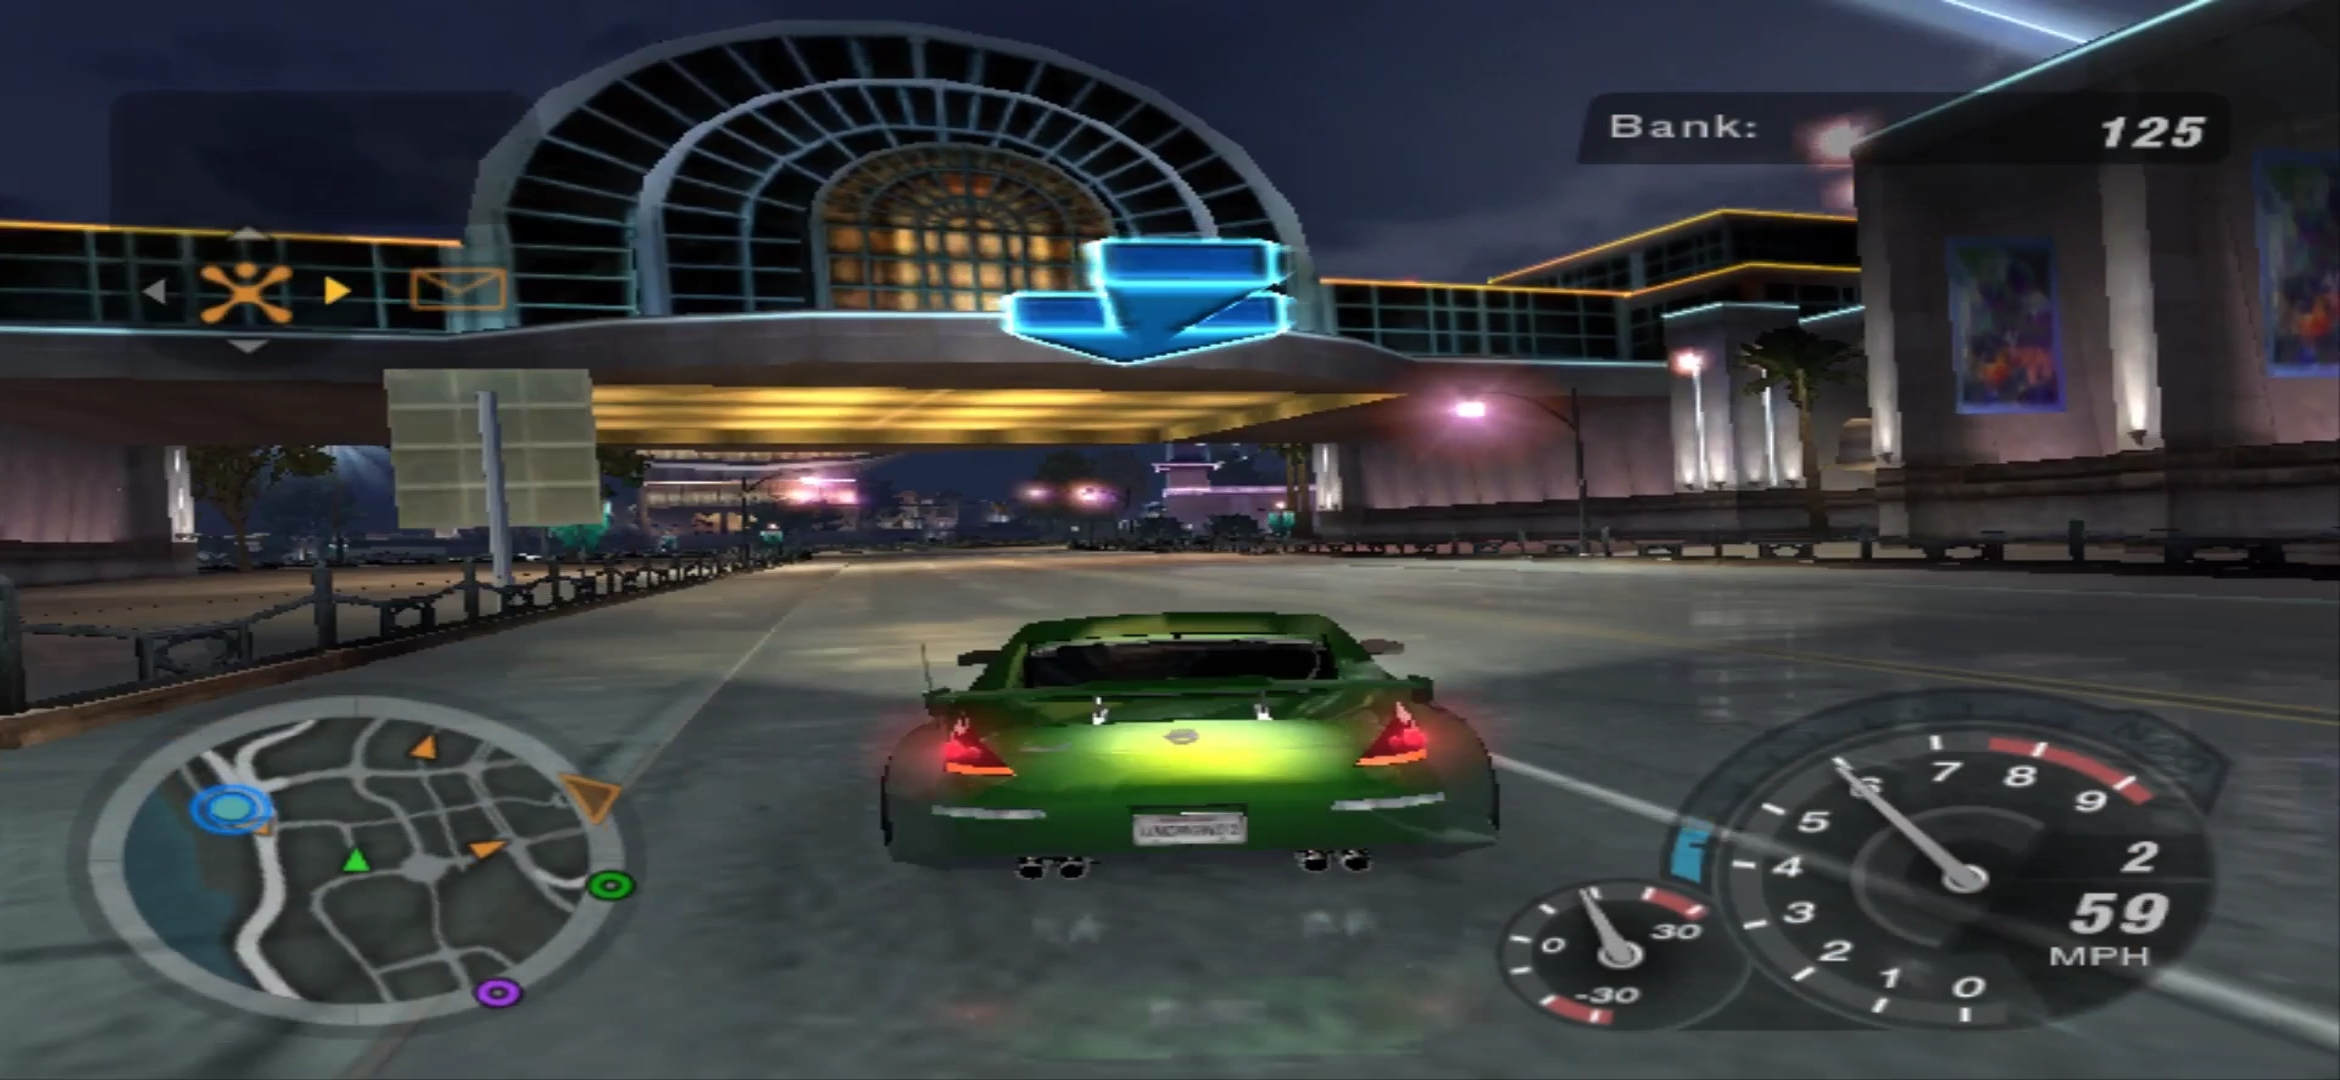 Download Nfs Underground 2 Highly Compressed For Pc 200gaming